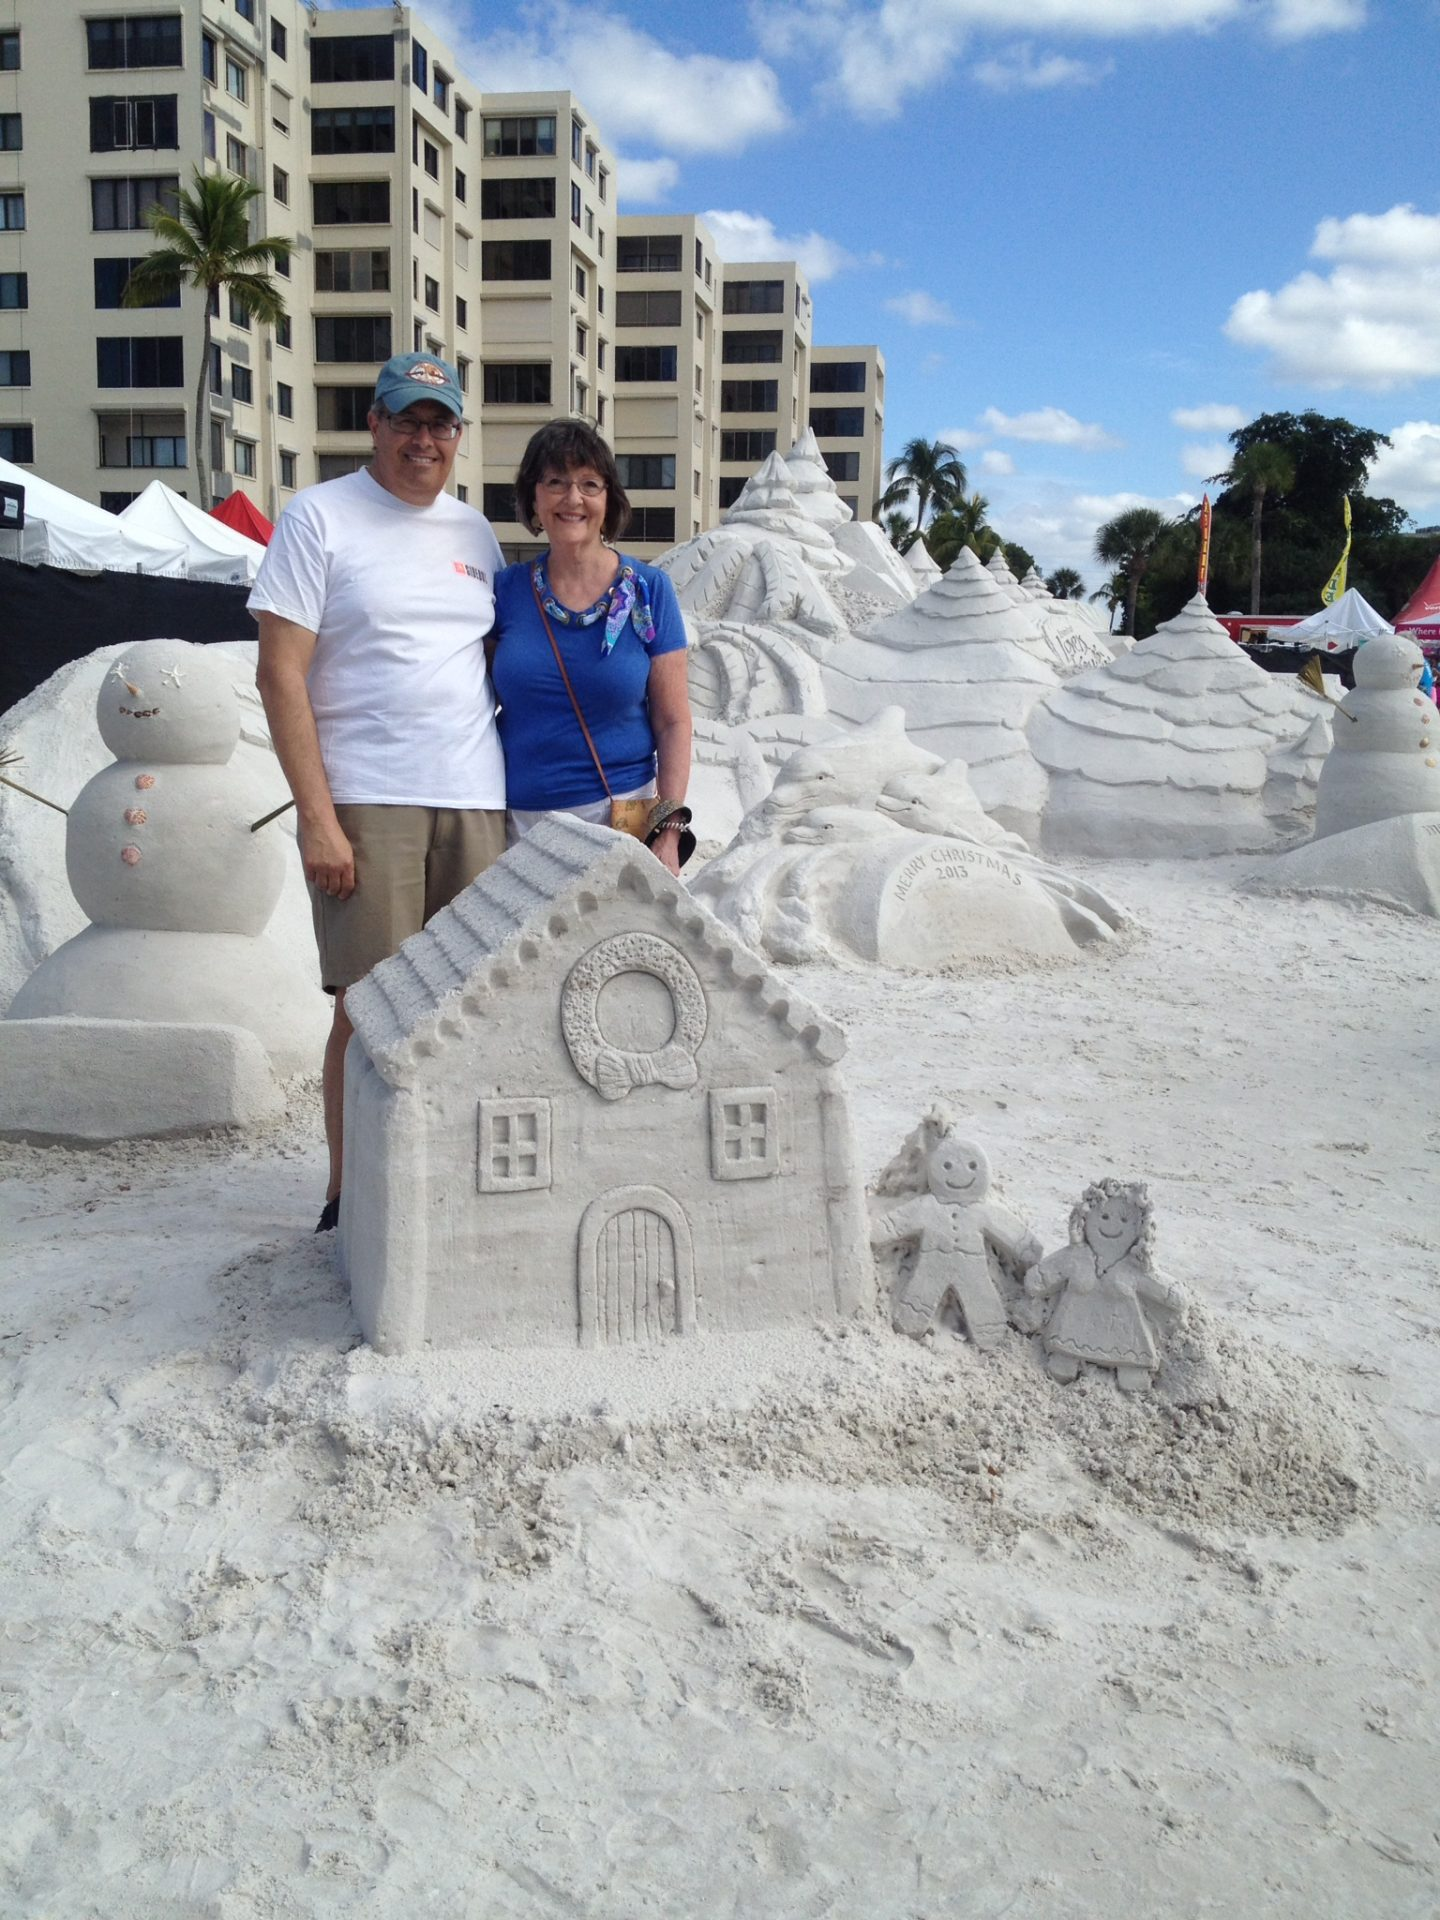 Peg and I at the National Sand Sculpture contest at Ft. Myers beach. Peg loved the beach and especially walking on the sand.